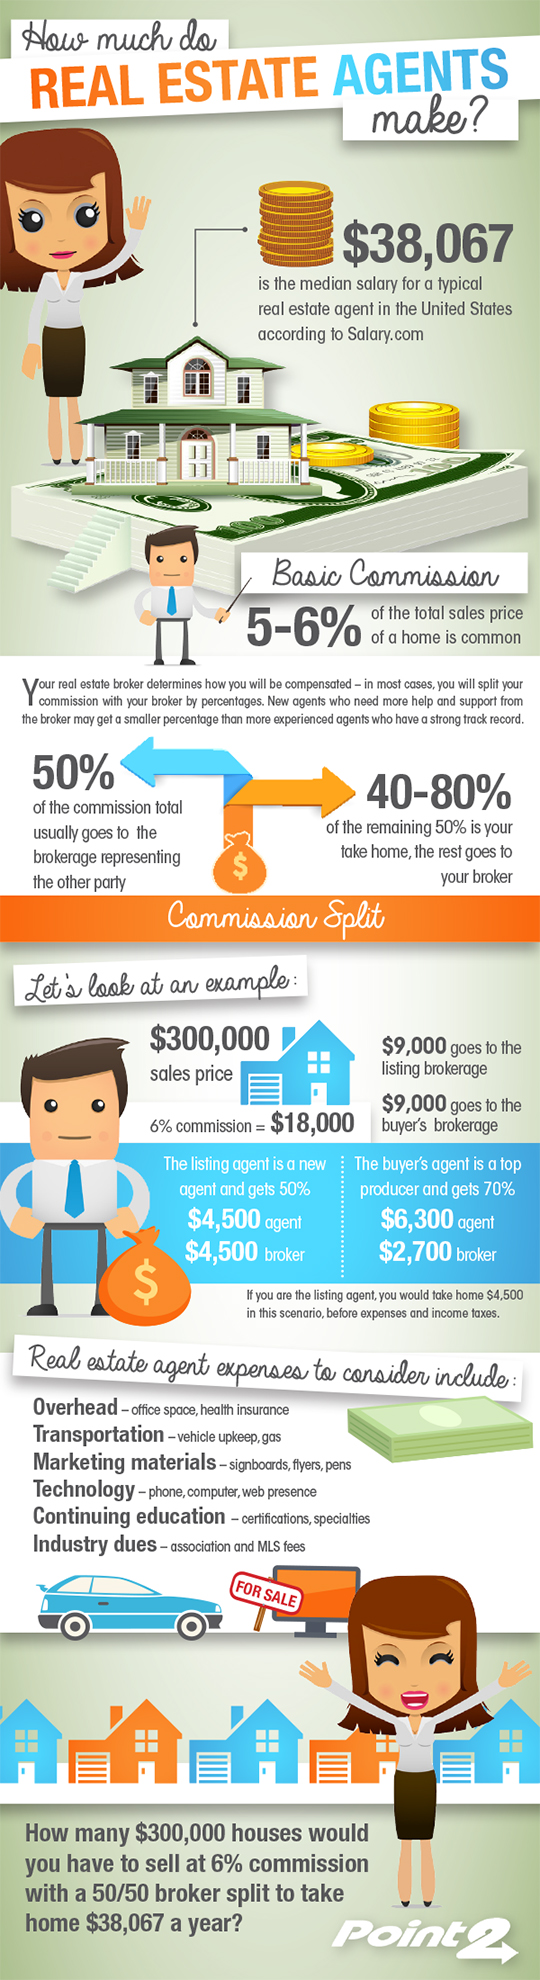 How Much Do Real Estate Agents Make Per House